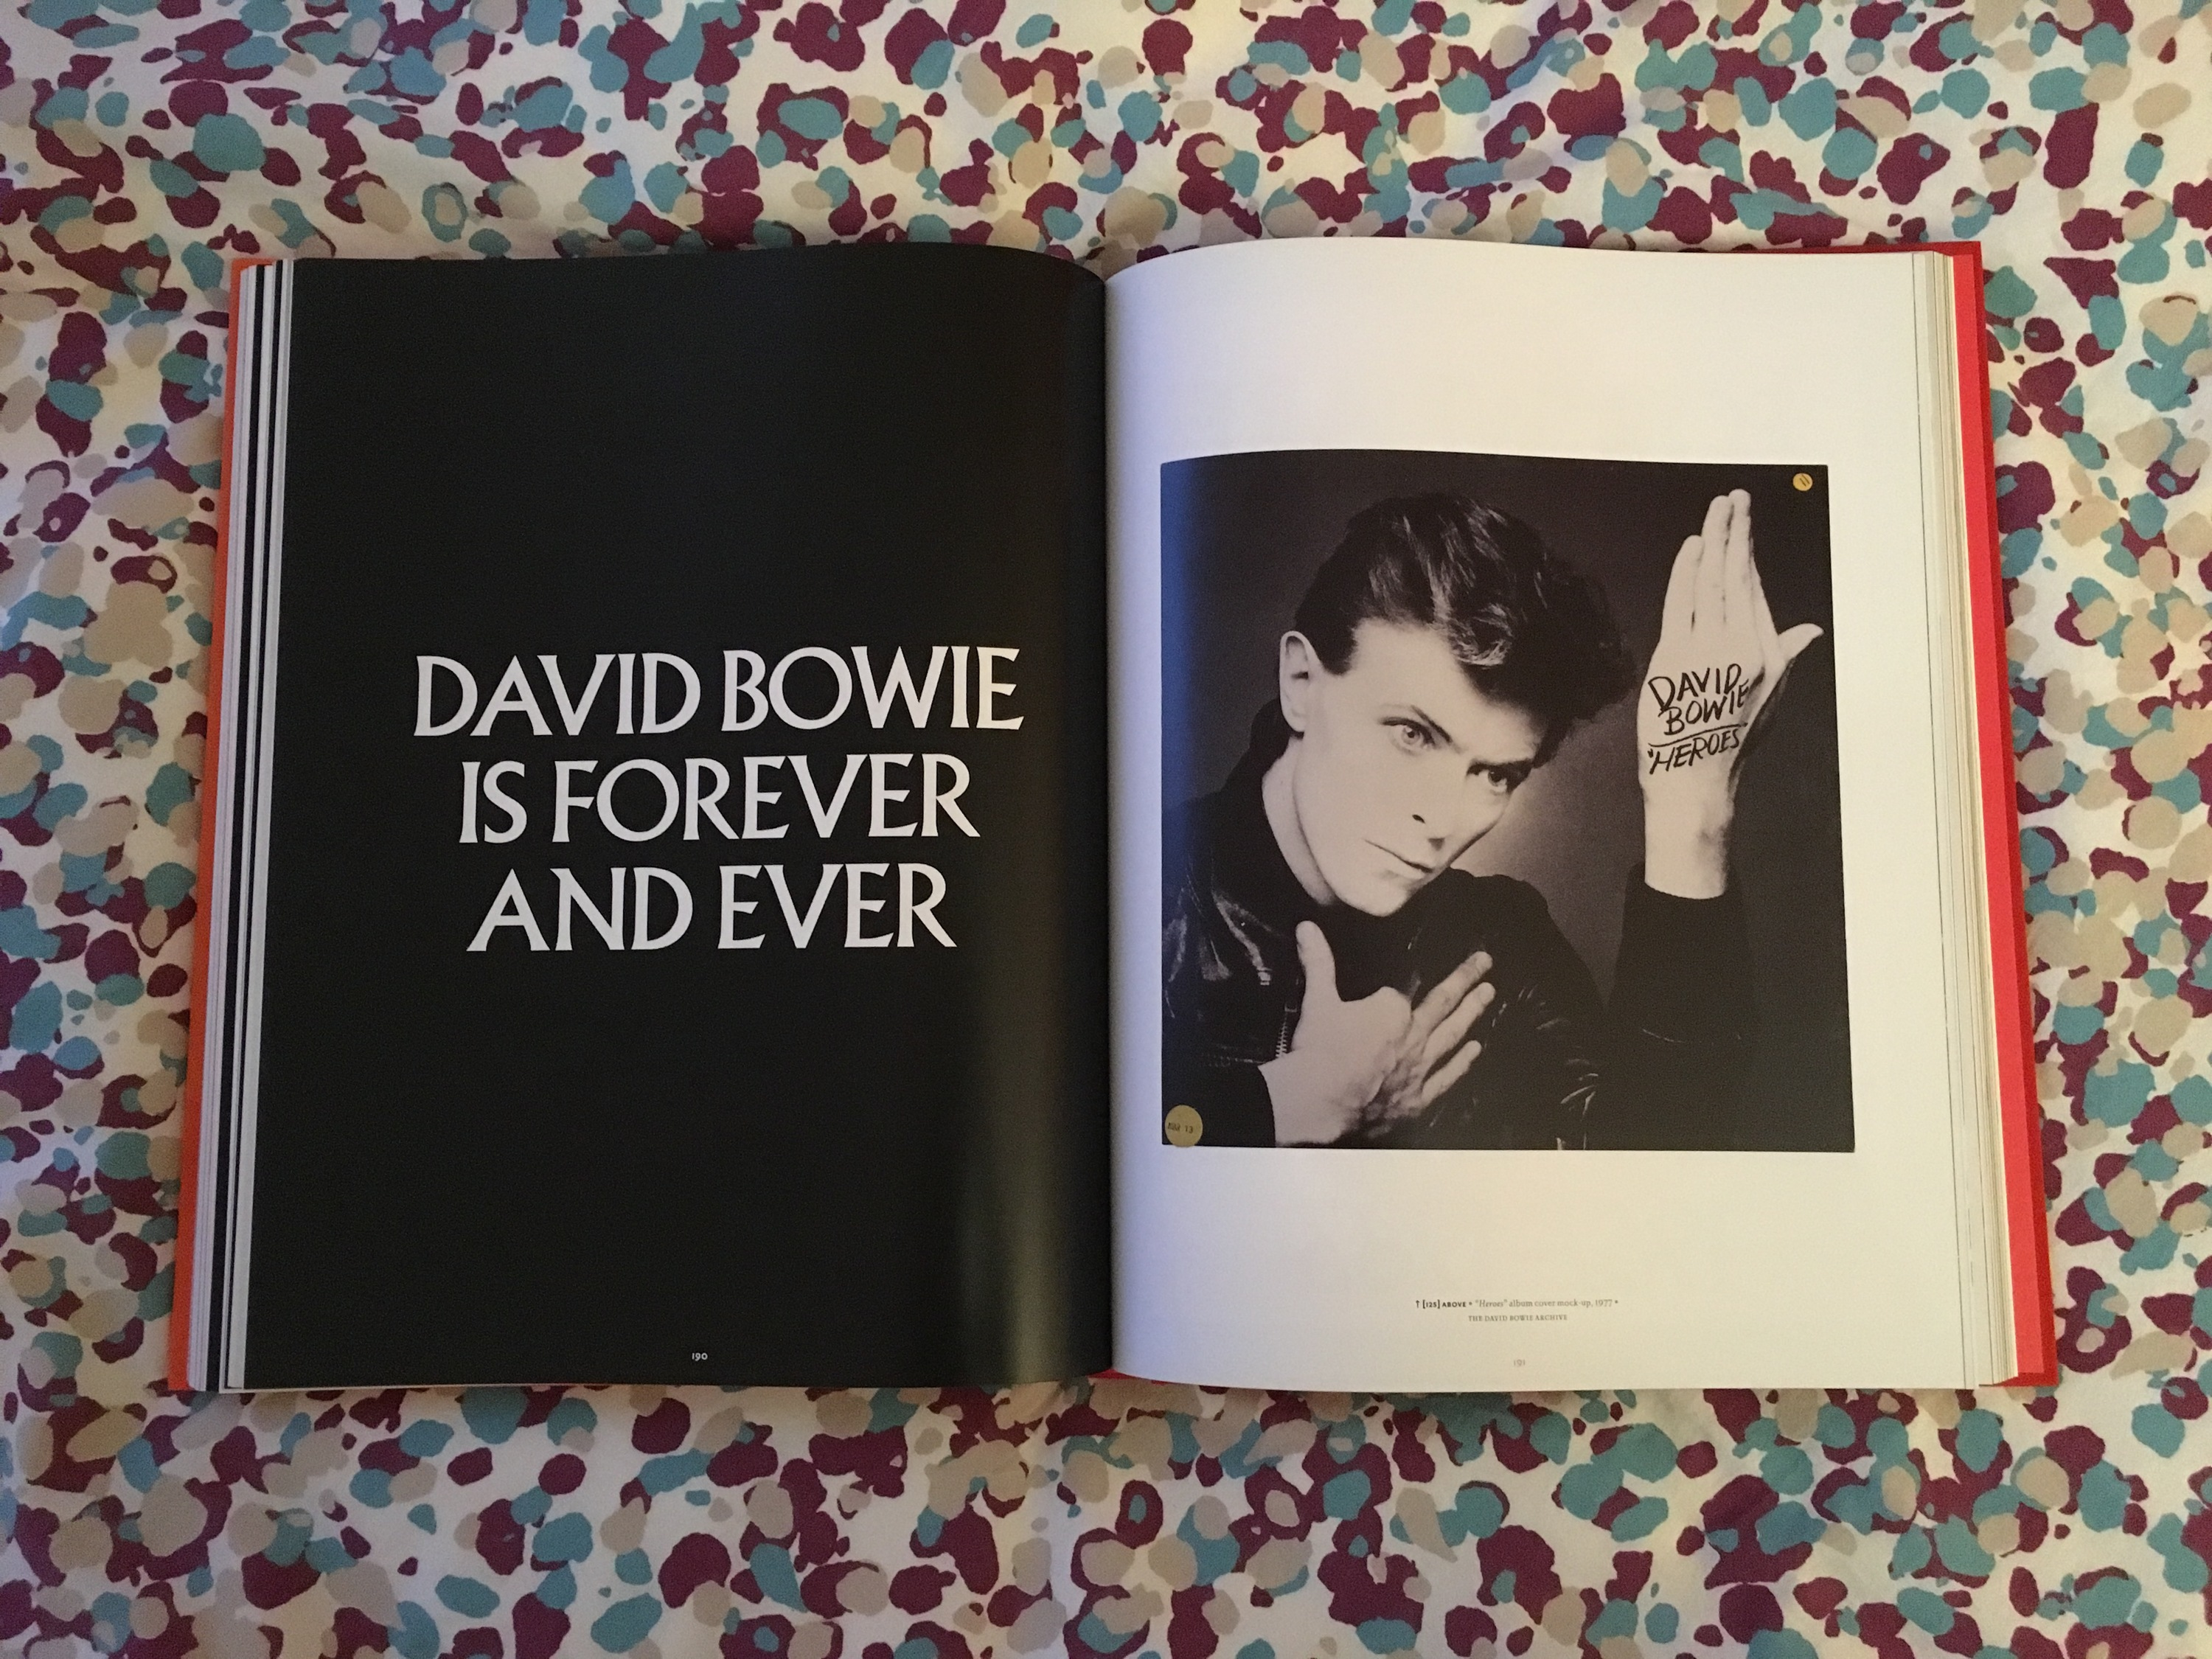 David Bowie is forever and ever